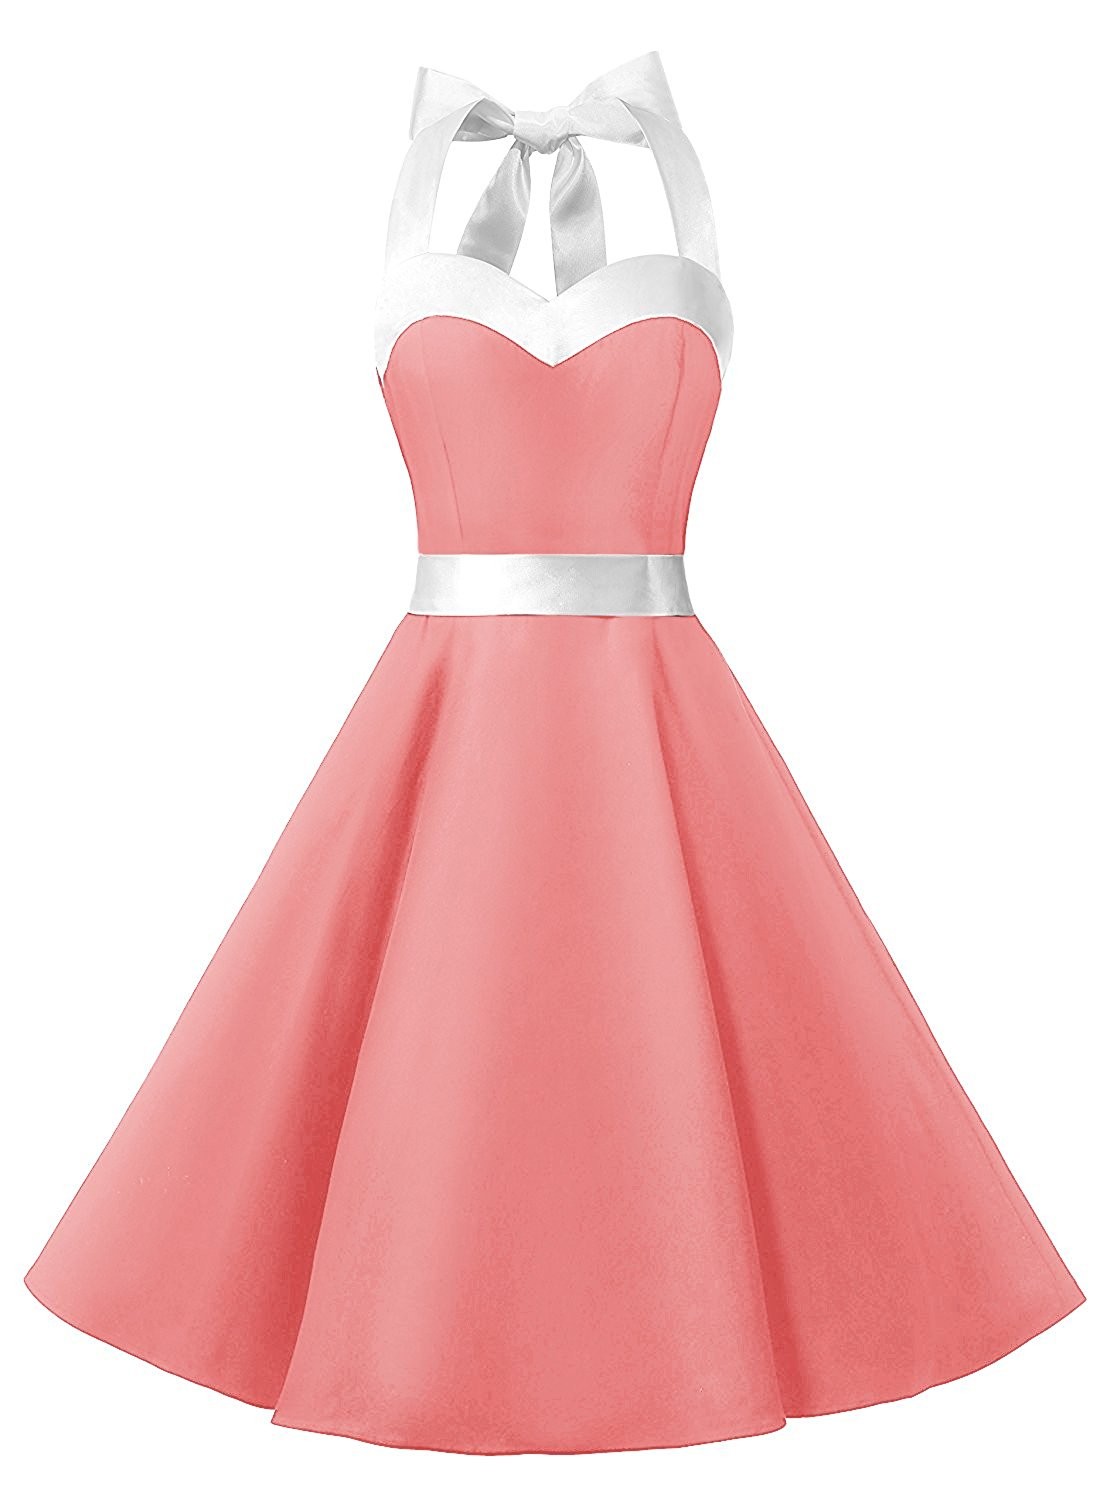 50s fashion rockabilly style halter pink vintage party dress on luulla Style me pink fashion show